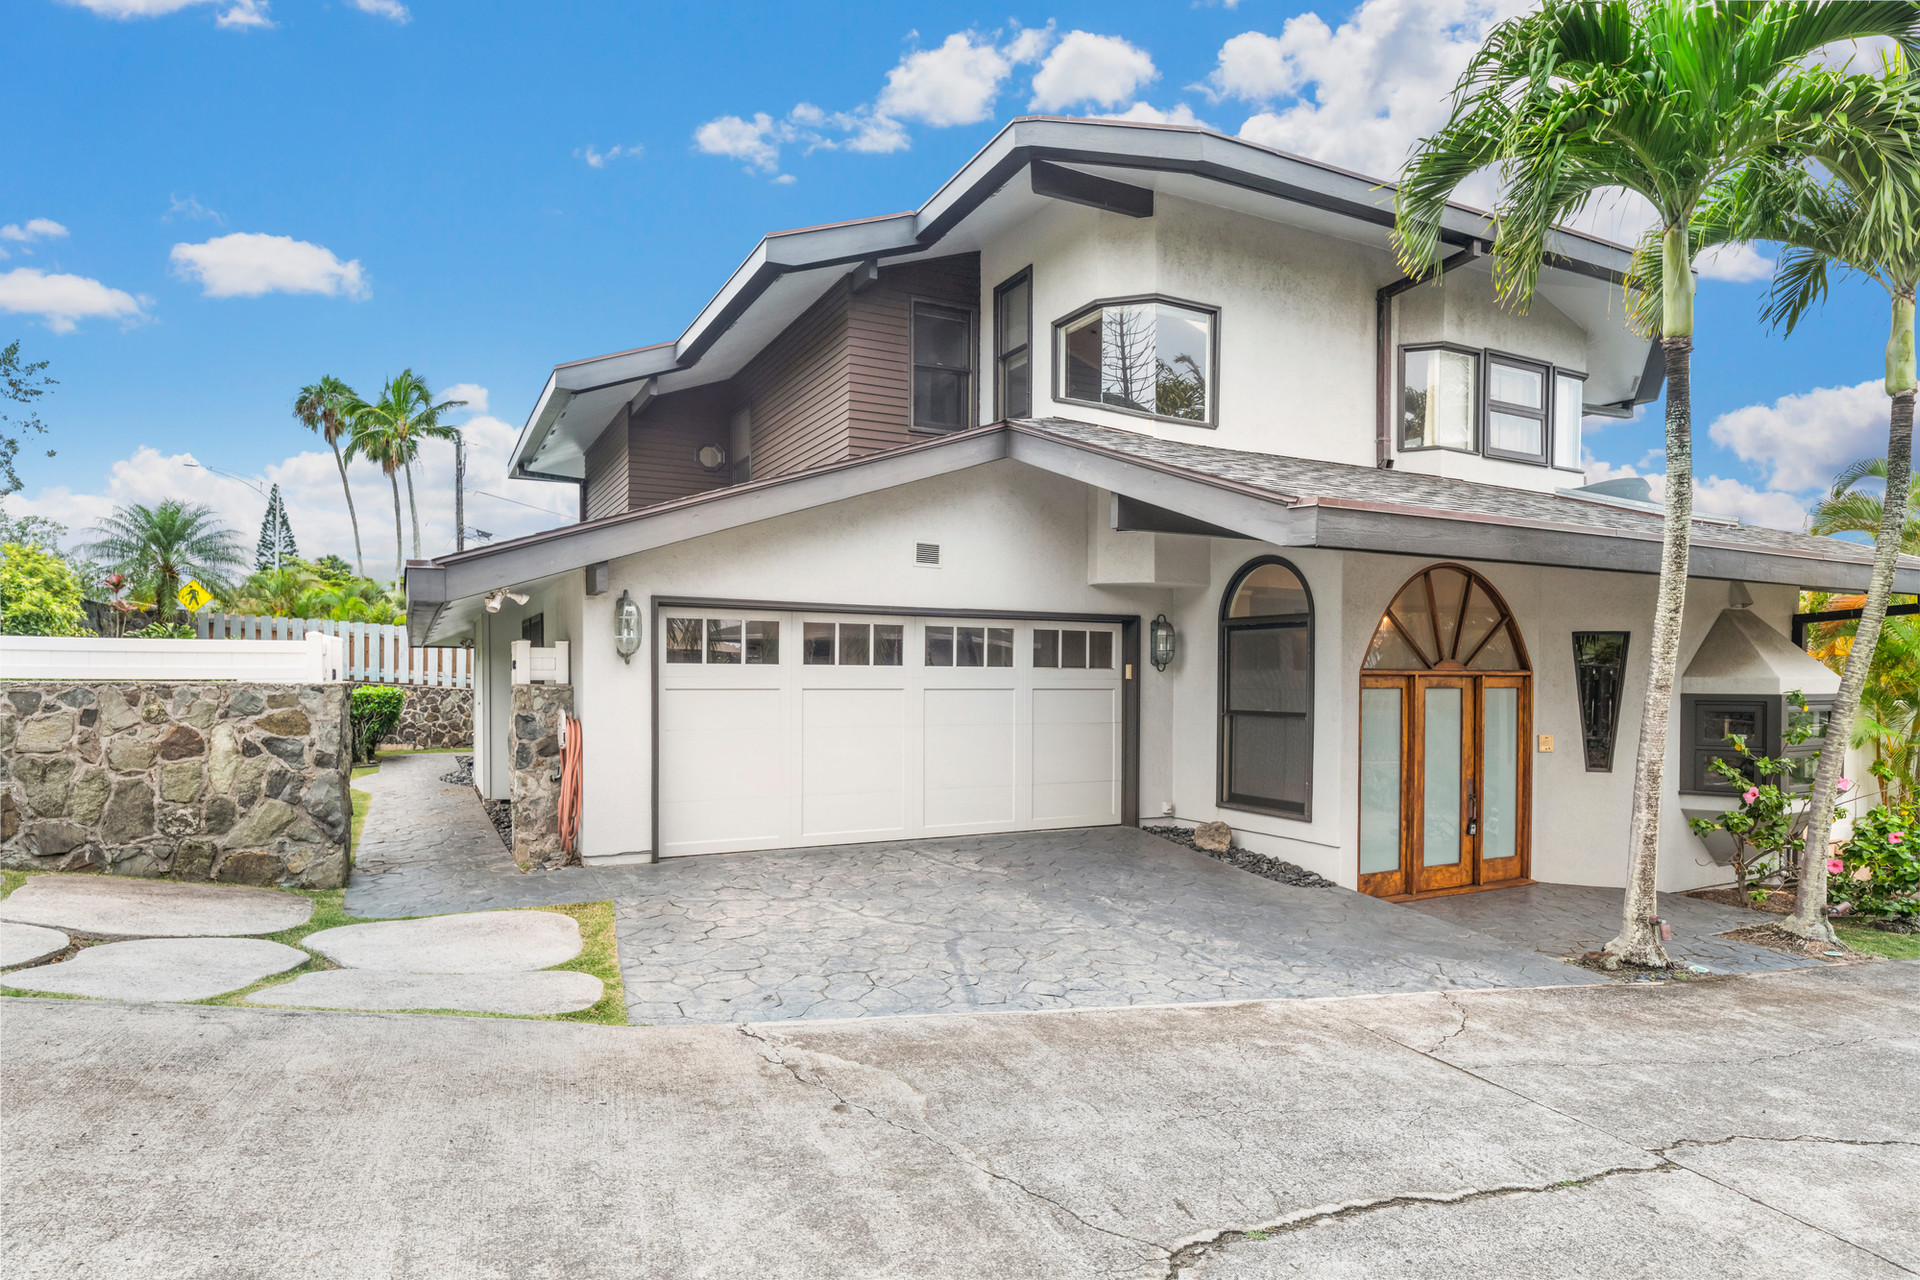 3 Bed | 2.5 Bath | 3,573 sq. ft. | Kaneohe